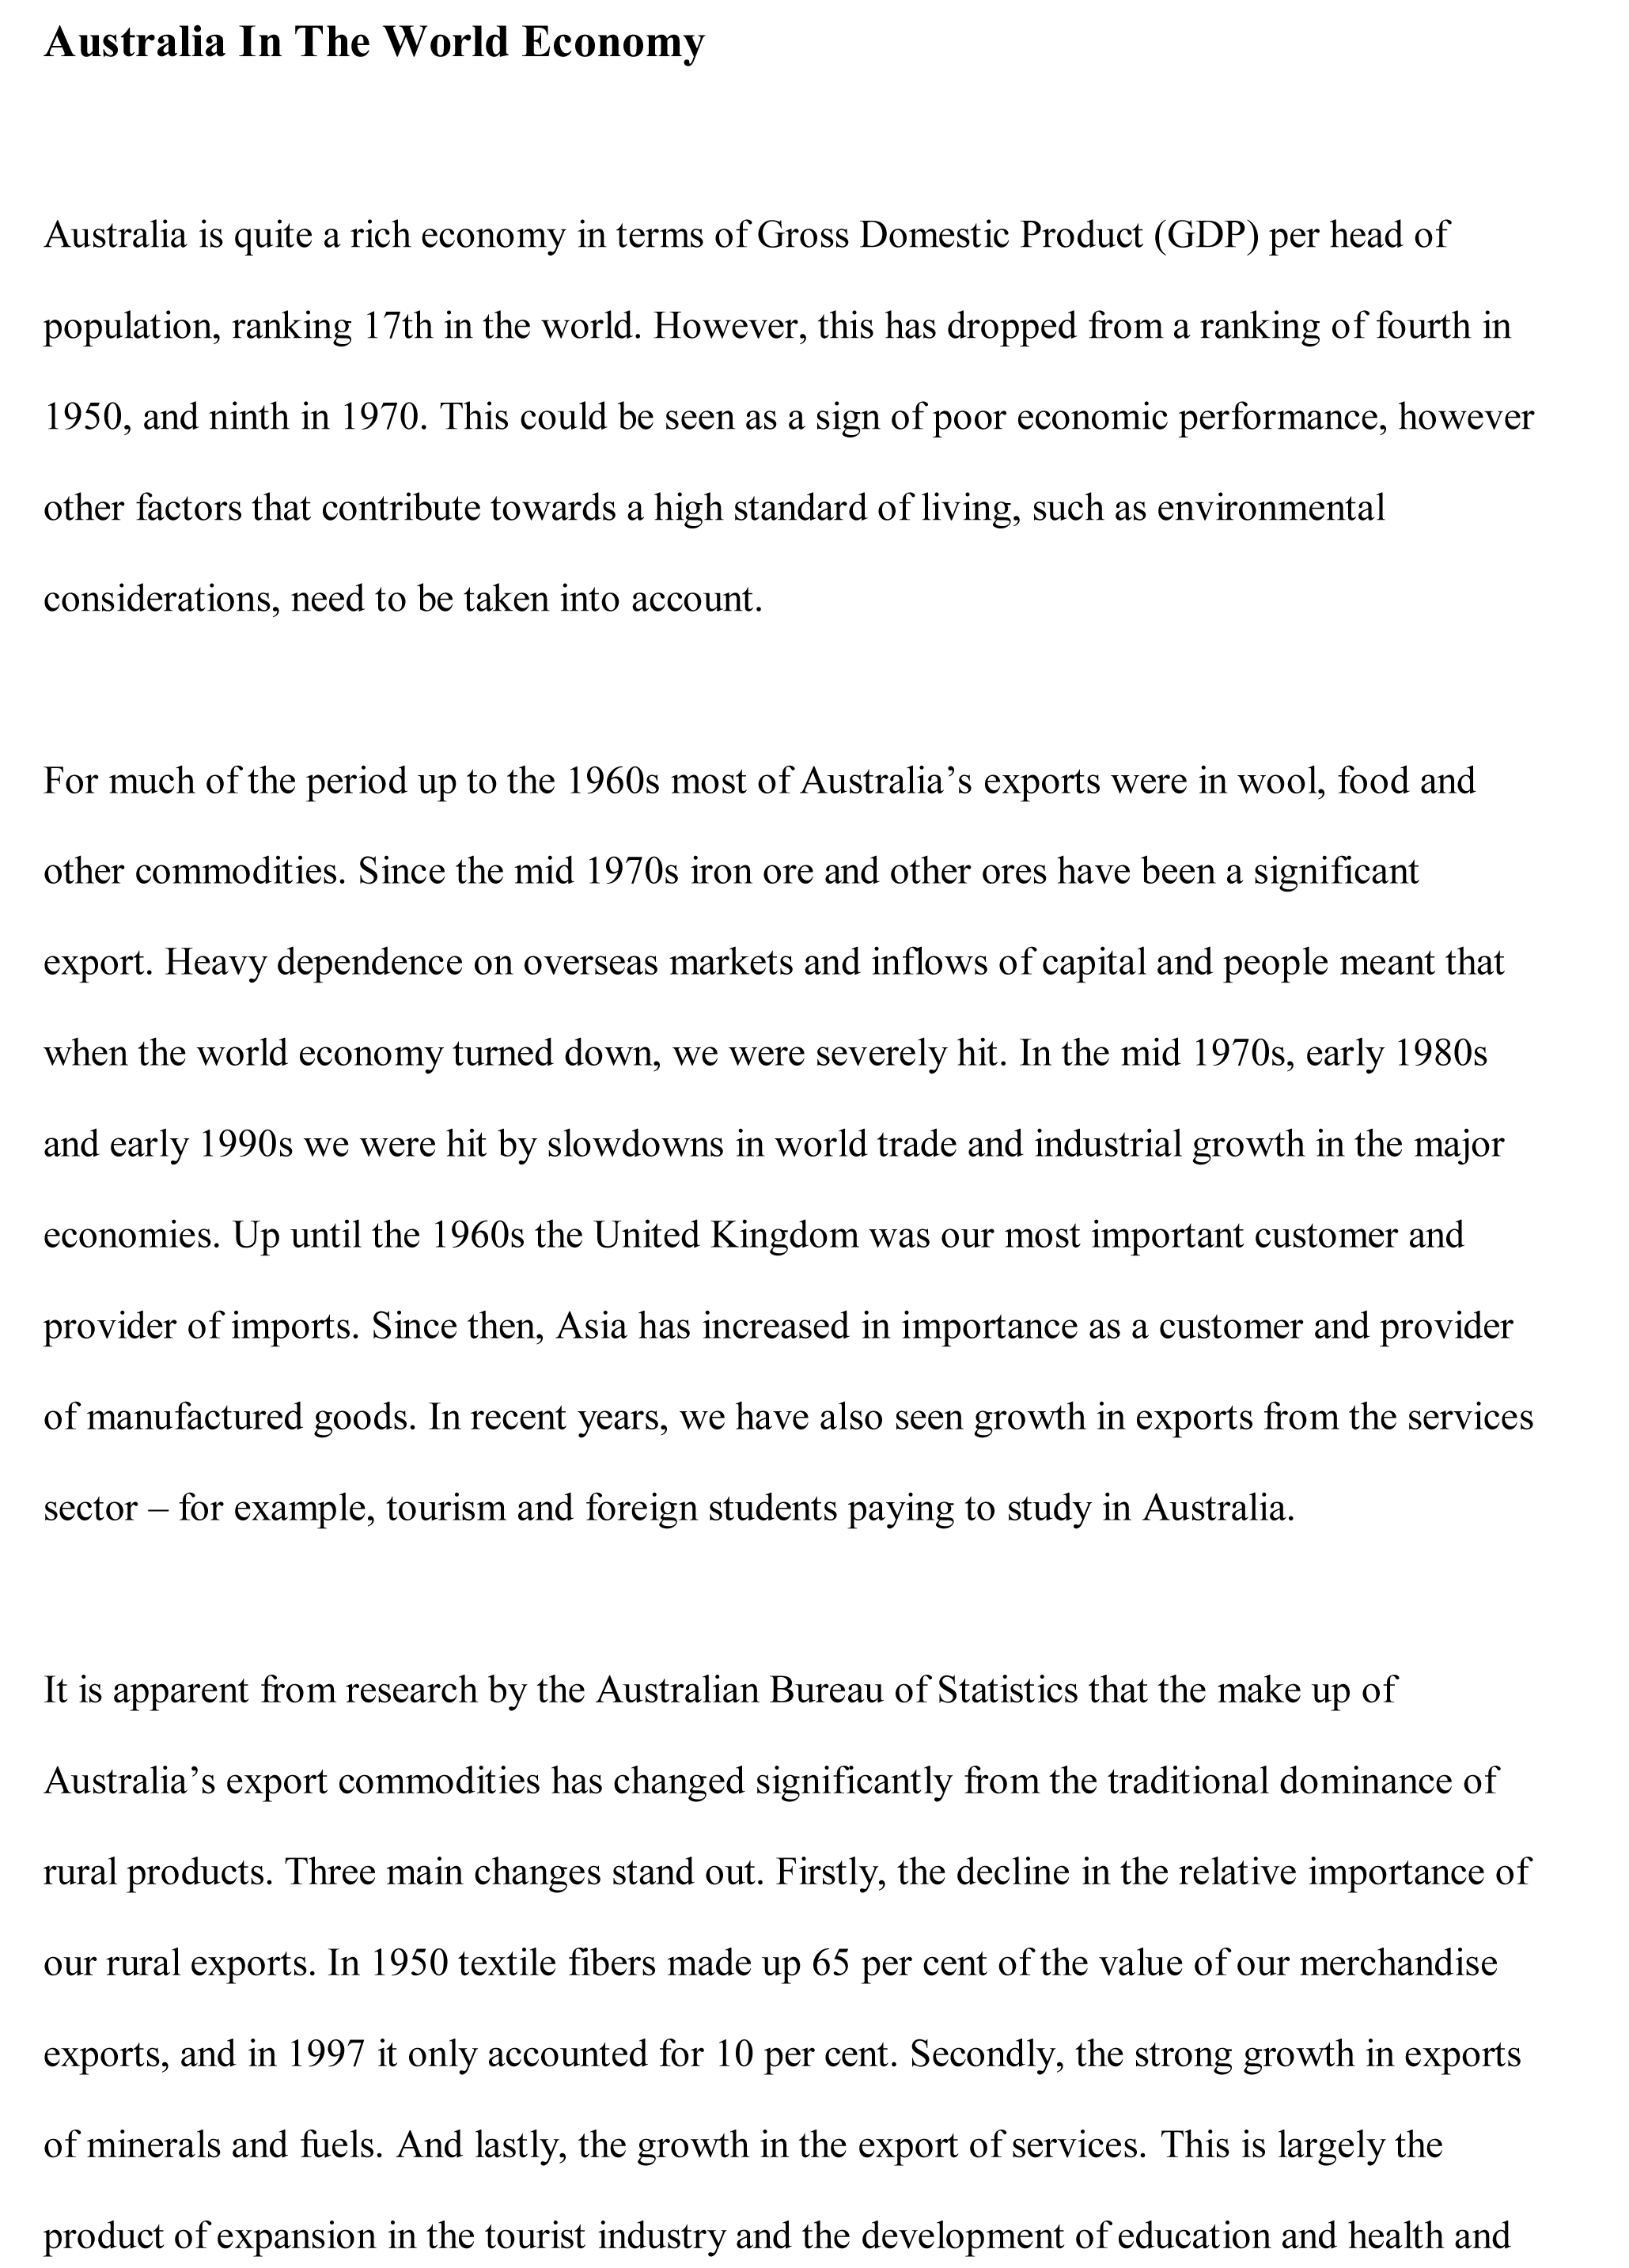 005 Free Write Essay Example Economics Archaicawful Writing Prompts Examples Website To Essays Full